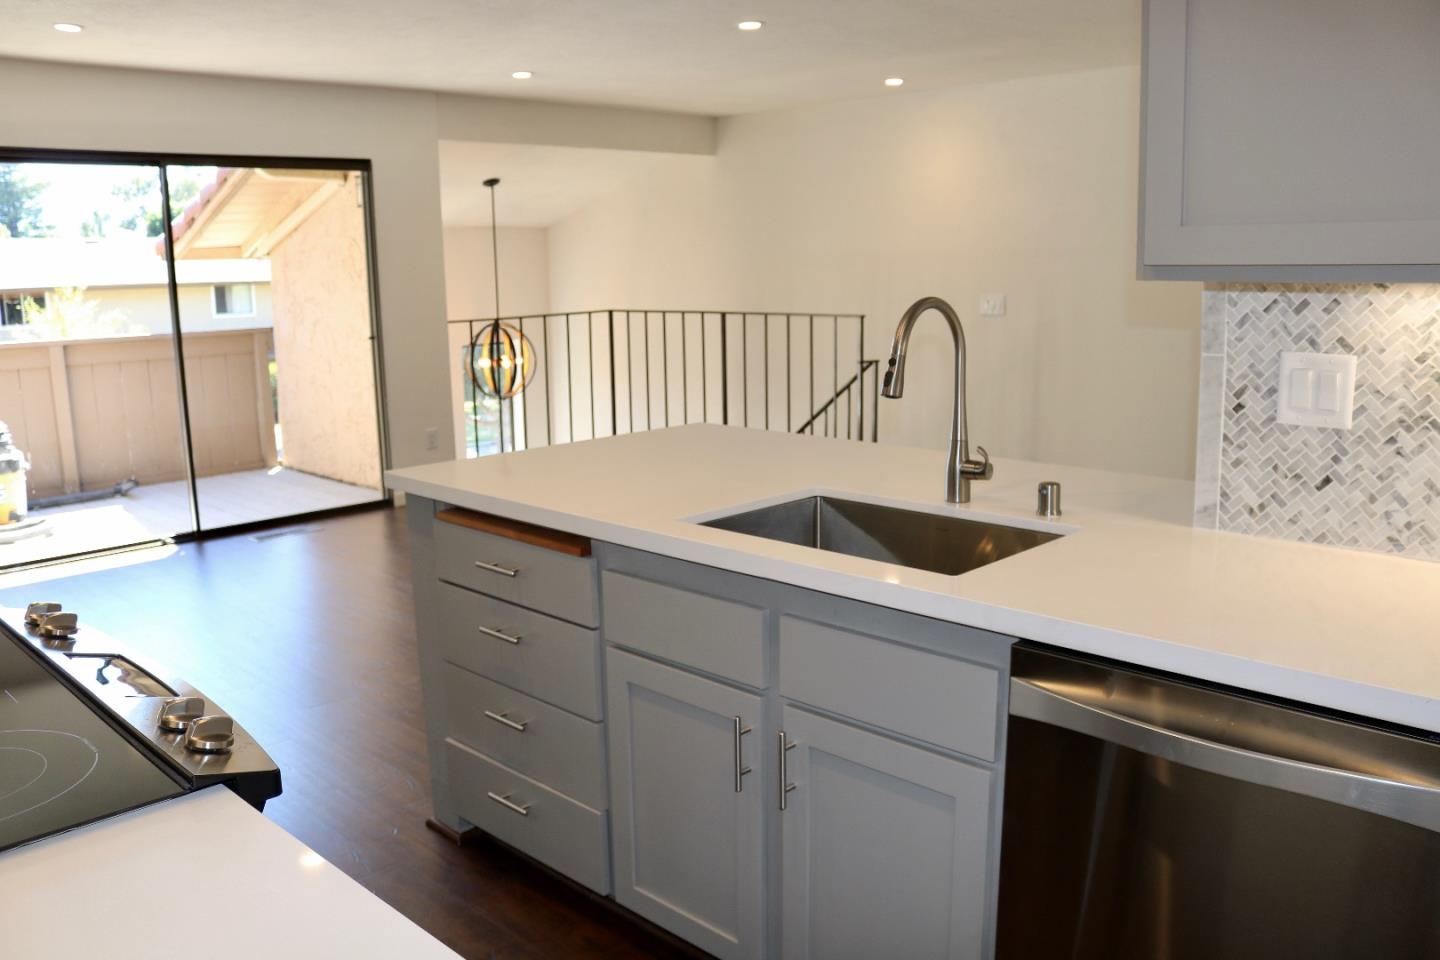 New Price!! This highly desirable townhouse would be perfect for student housing, a second home or first time home buyers.  Walk to UCSC from this super cute & clean, beautifully remodeled townhouse!  2 bedroom, 1.5 bath, located on the Upper Westside!  Or would make a great investment/rental opportunity!  Some of the updates include: brand new wood laminate floors, brand new appliances, refaced cabinets, remodeled bathrooms, new LED lighting and a gorgeous remodeled kitchen featuring stunning white quartz counter tops. This home sits on a small cul-de-sac in a very well maintained community with covered carport parking and a private, gated and landscaped courtyard.  Only moments away from UCSC campus, University Terrace park, multiple hiking/ mountain biking trails and down the street to all Westside restaurants, stores, and Santa Cruz beaches!  A rare, turn-key property ready to go!  NEWLY REMODELED KITCHEN & BATHROOMS!